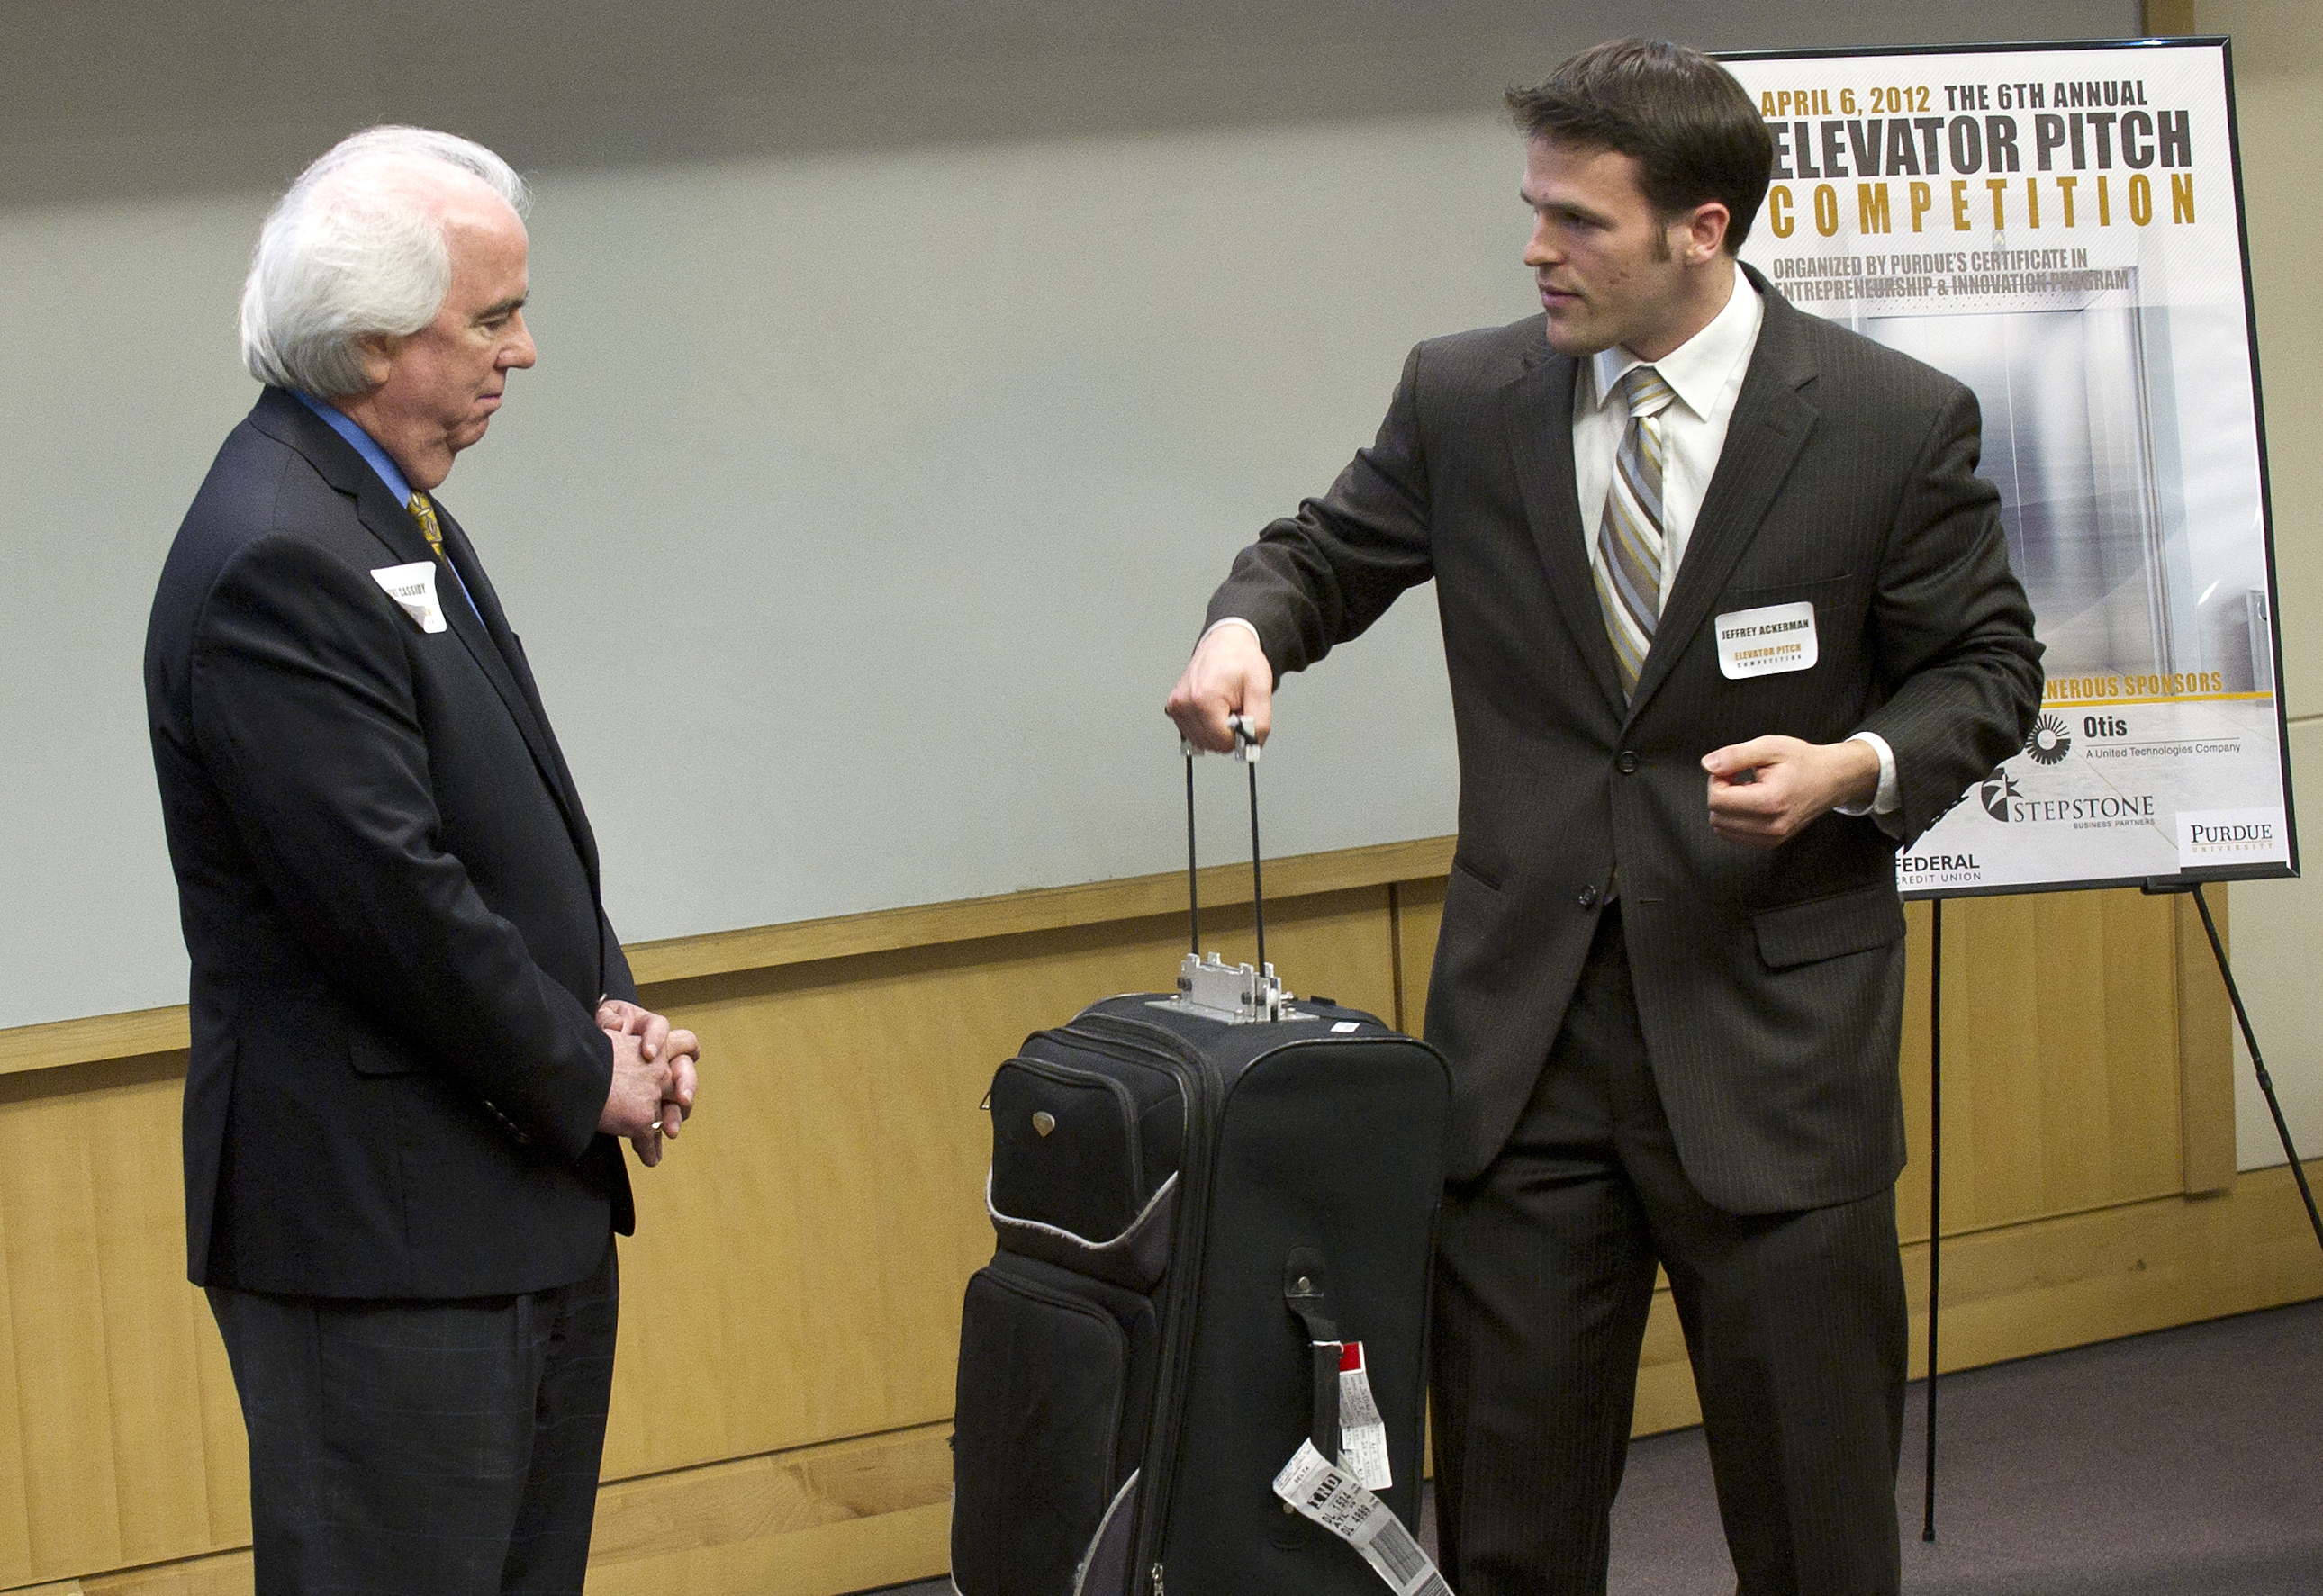 Innovative car seat buckle, suitcase handle take top spots at 6th annual Purdue Elevator Pitch ...